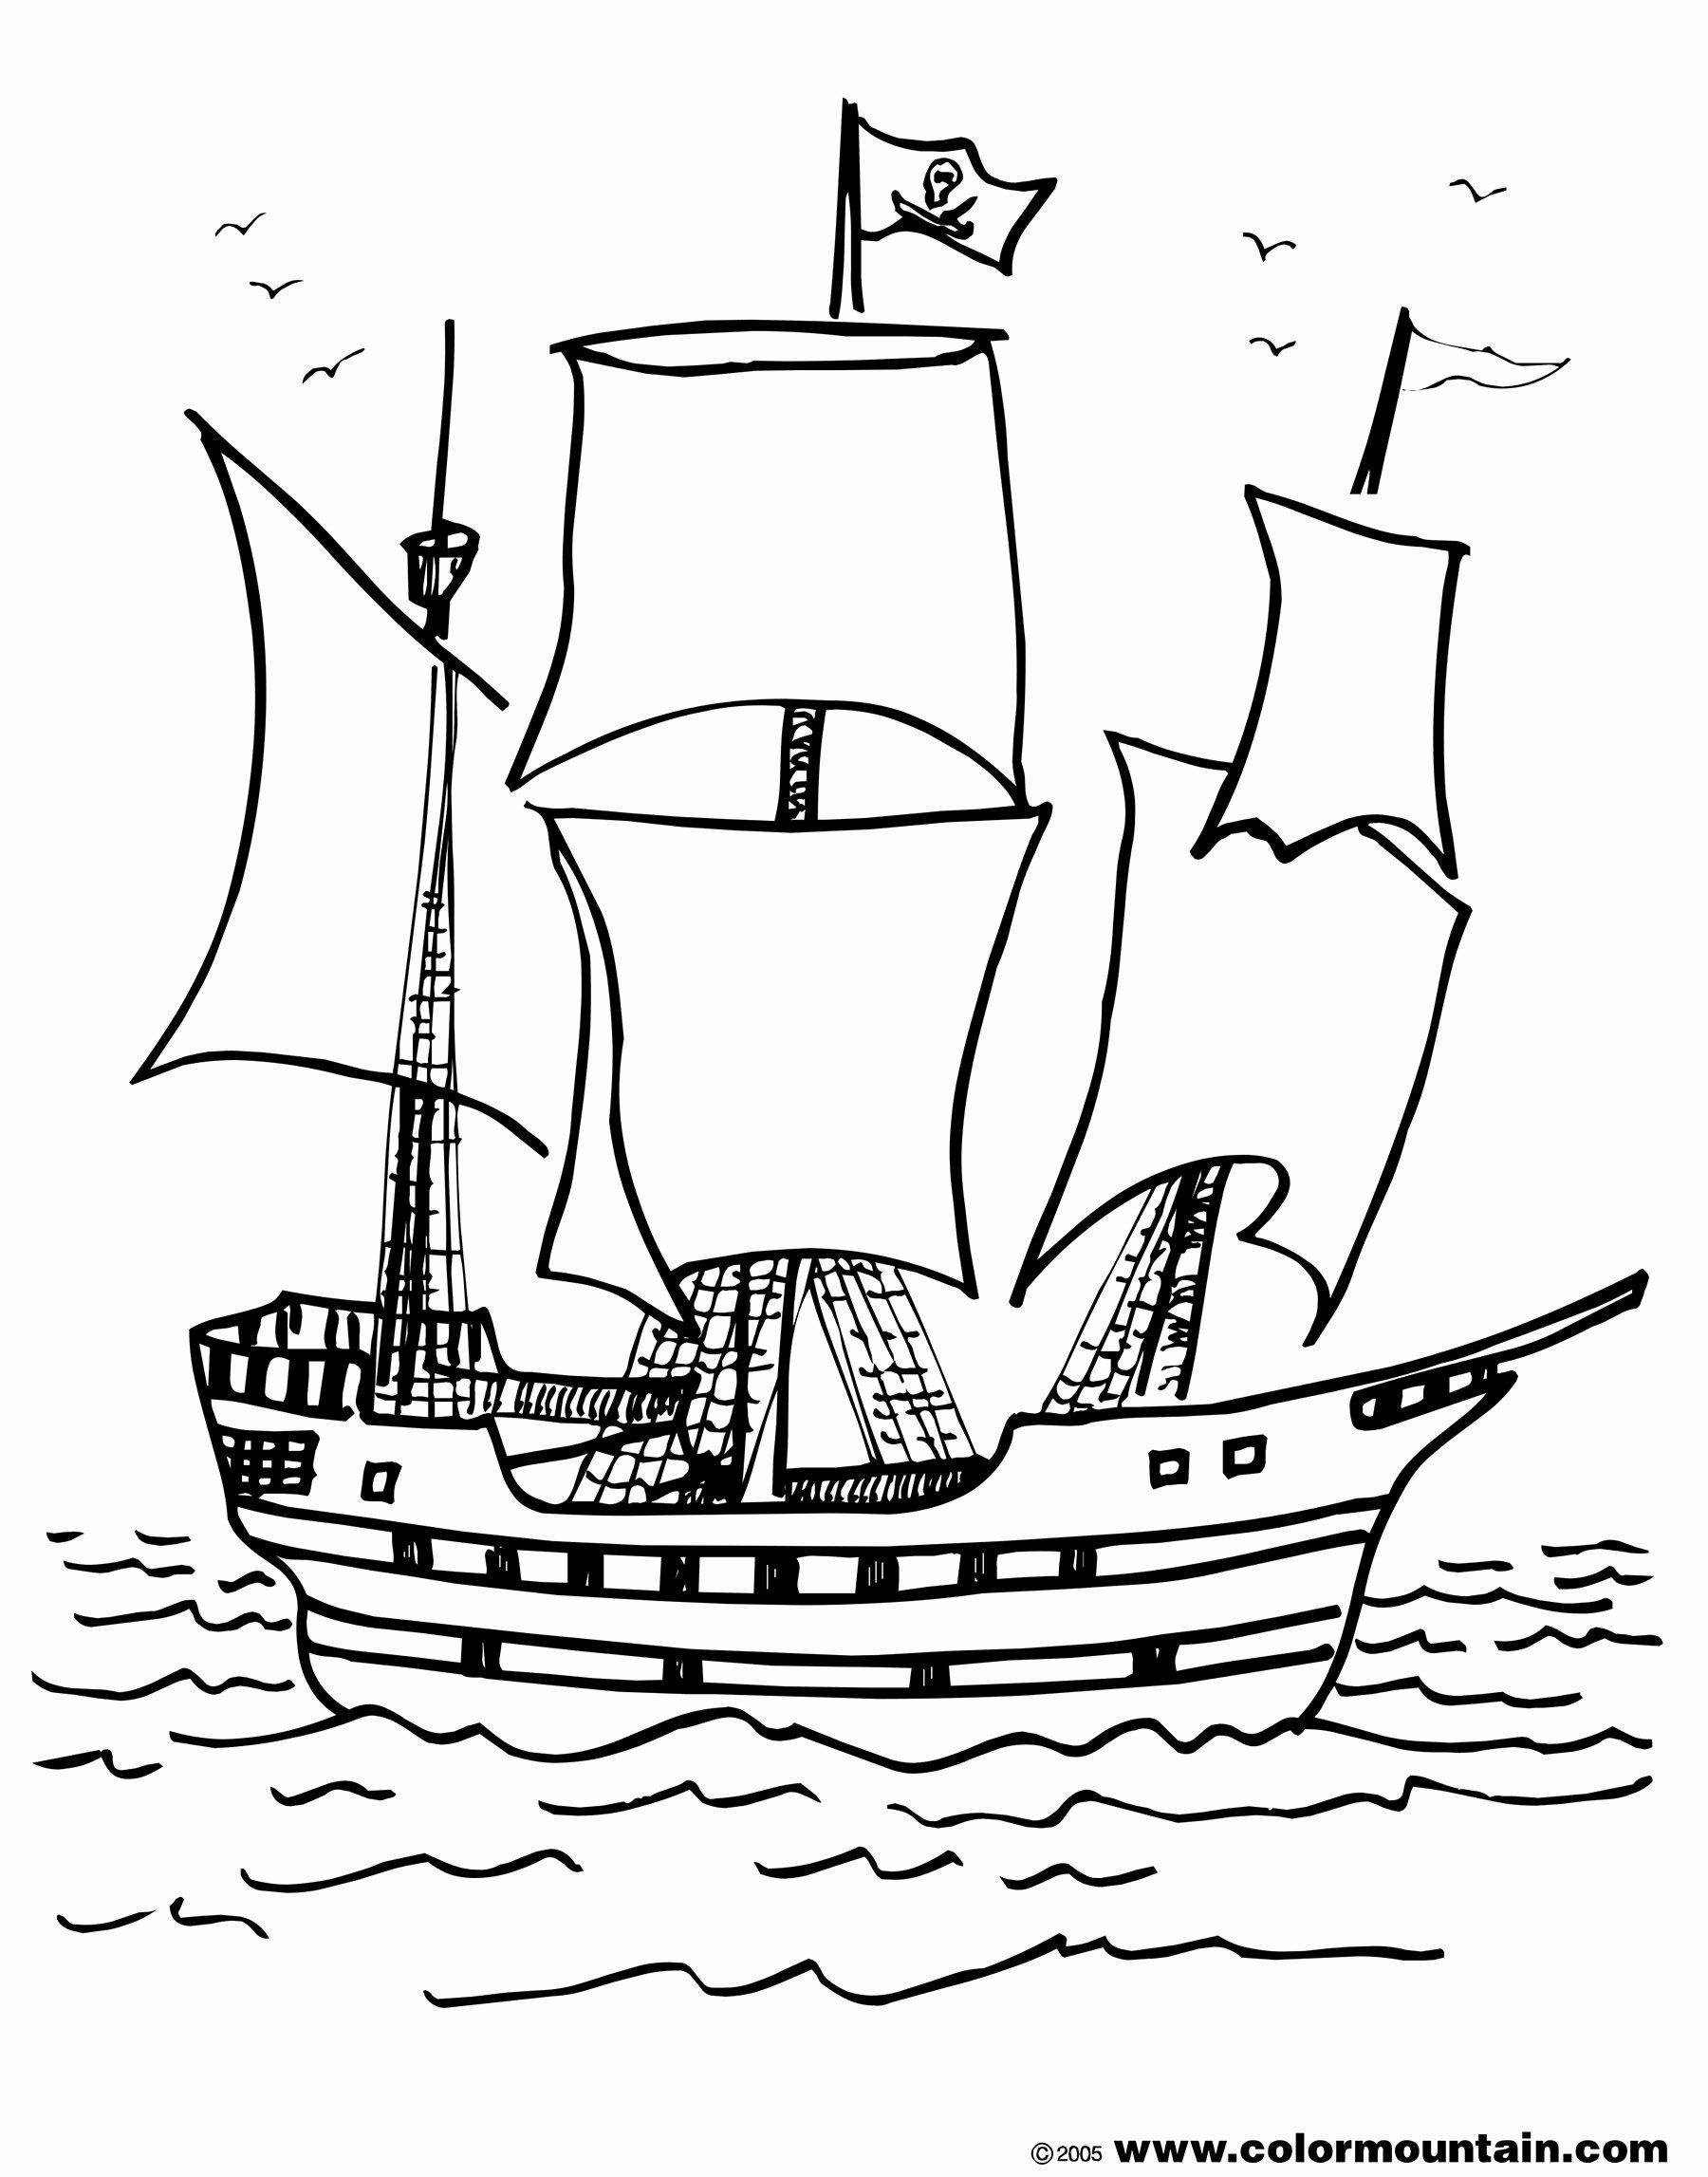 Pin By Bbb On Cartoon Coloring Pages Pirate Coloring Pages Pirate Pictures Cartoon Coloring Pages [ 1703 x 1277 Pixel ]